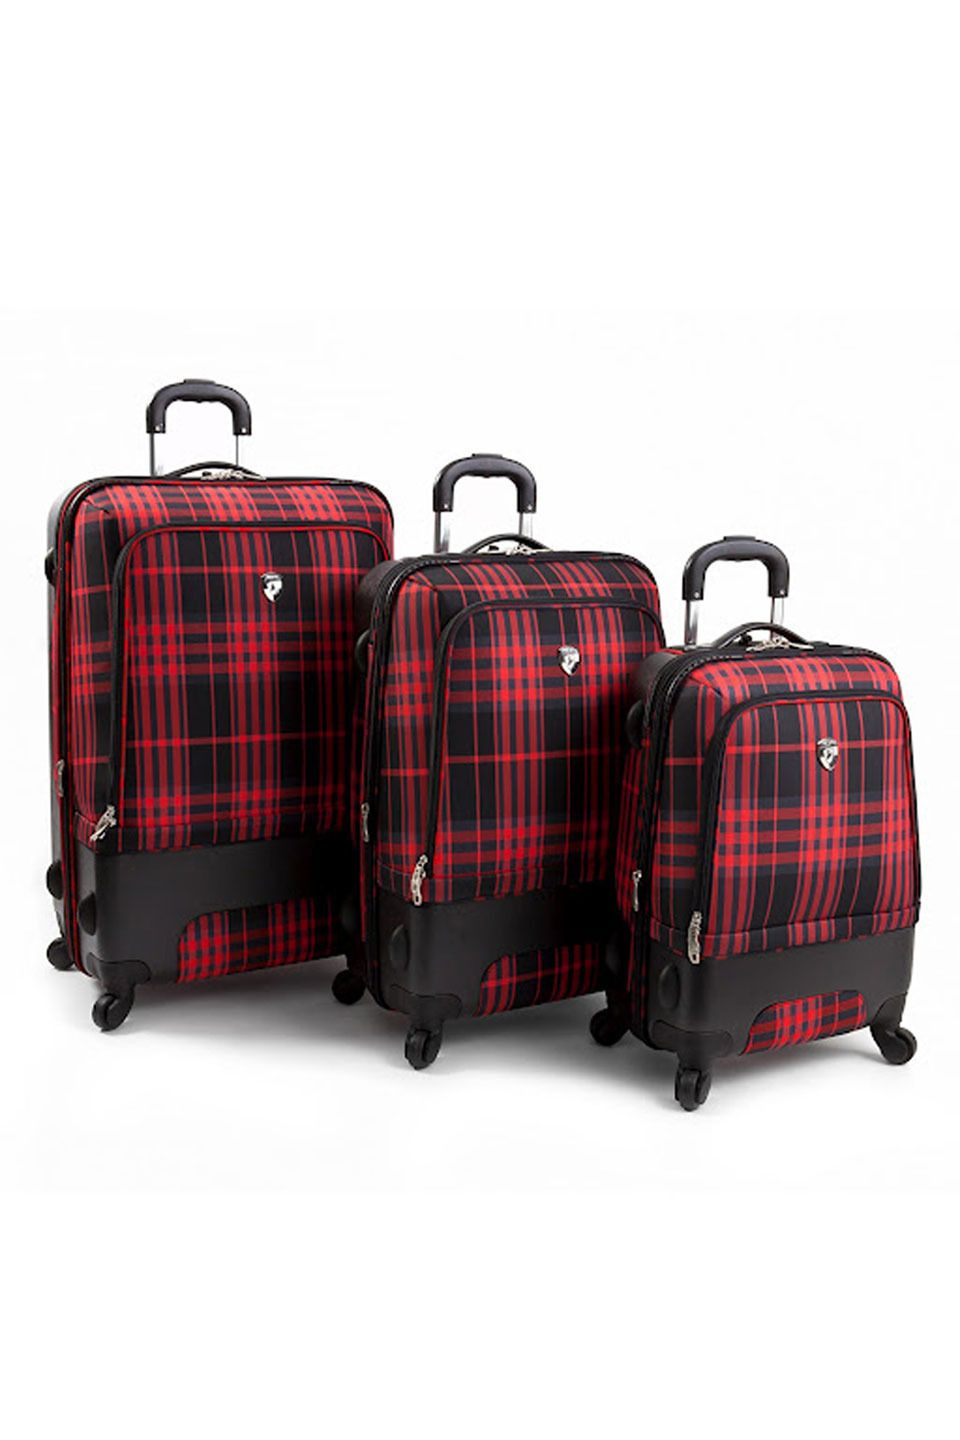 Heys International Plaid Hybrid 3 Piece Luggage Set In Red And Black Beyond The Rack